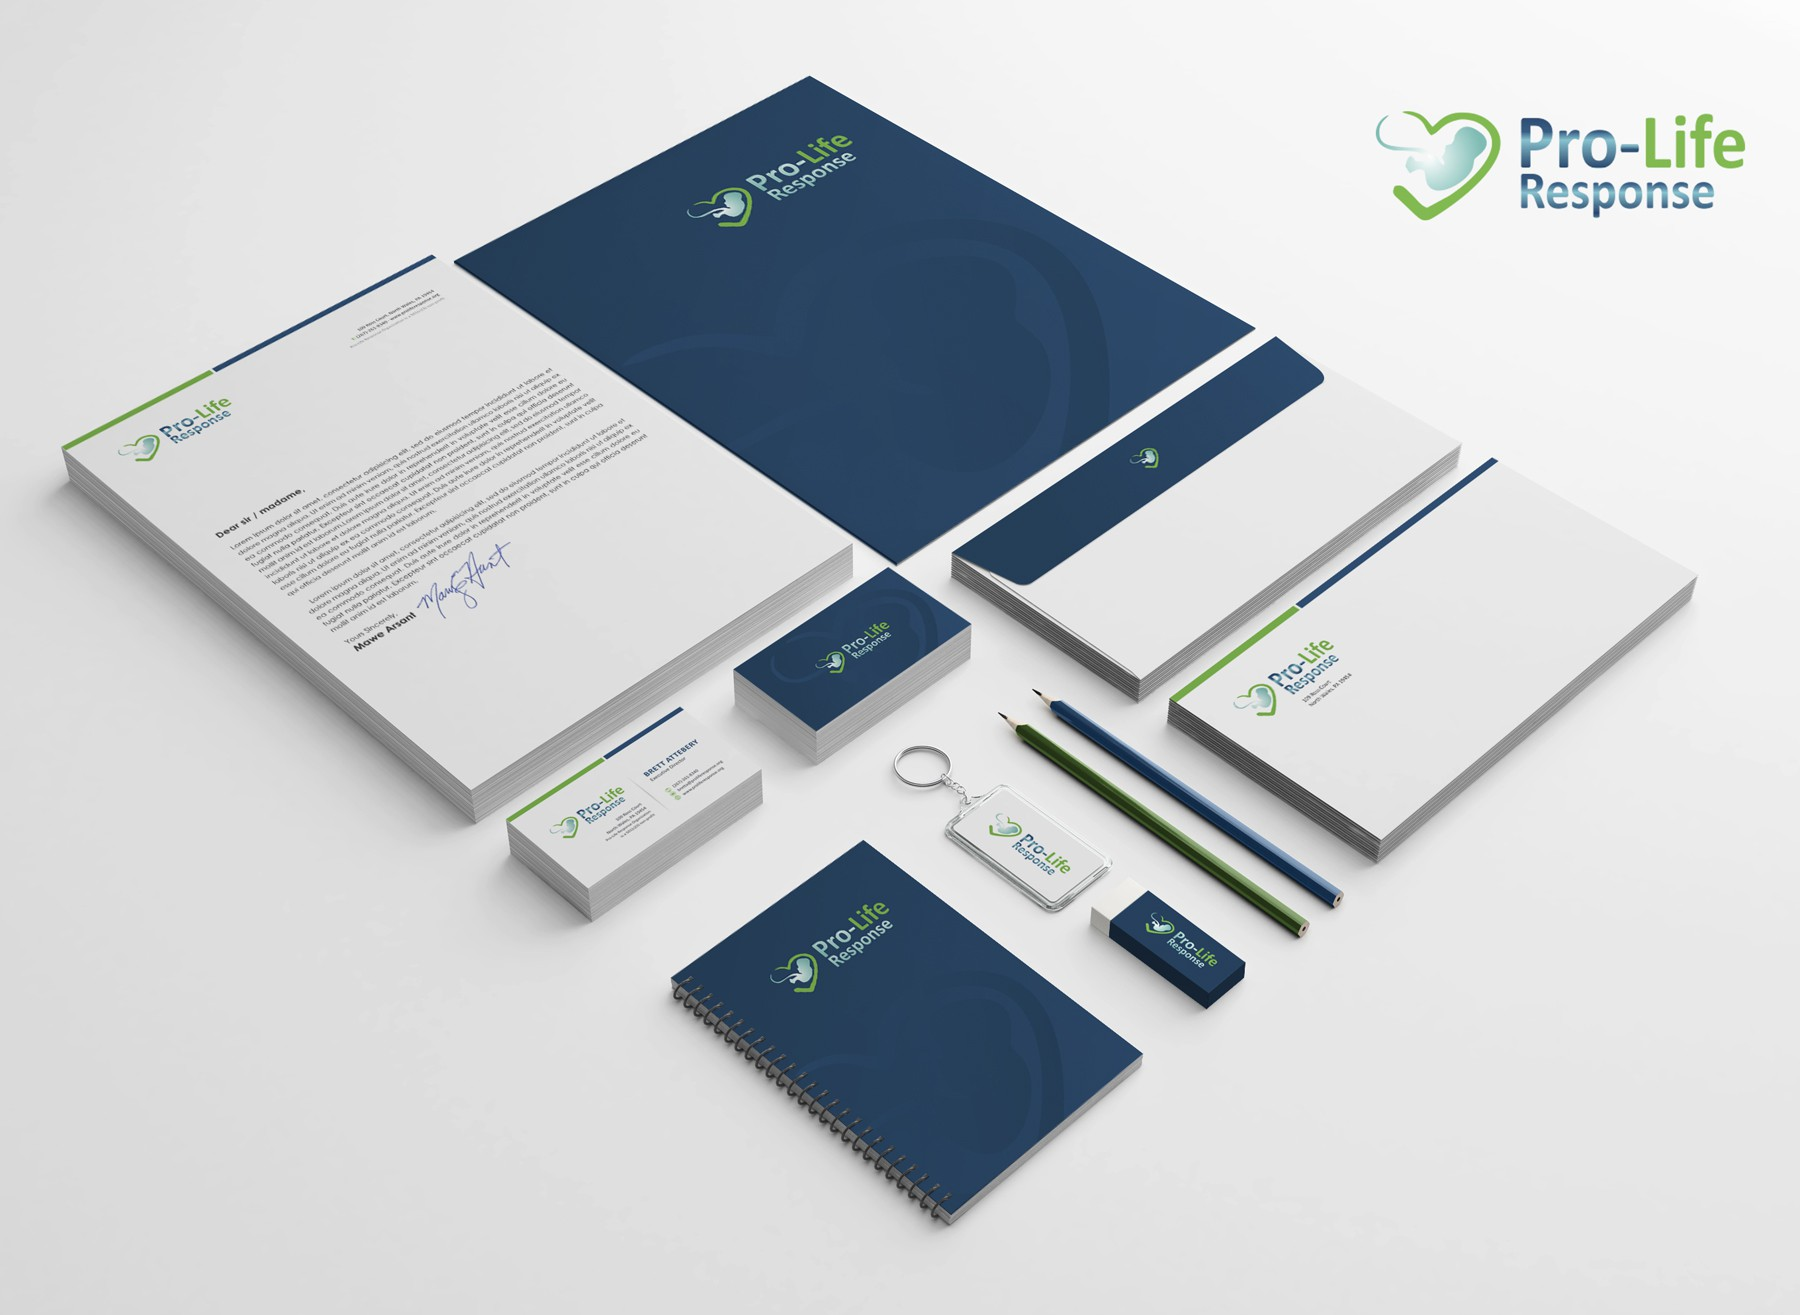 Create a branding package for Pro-Life Response non-profit organization